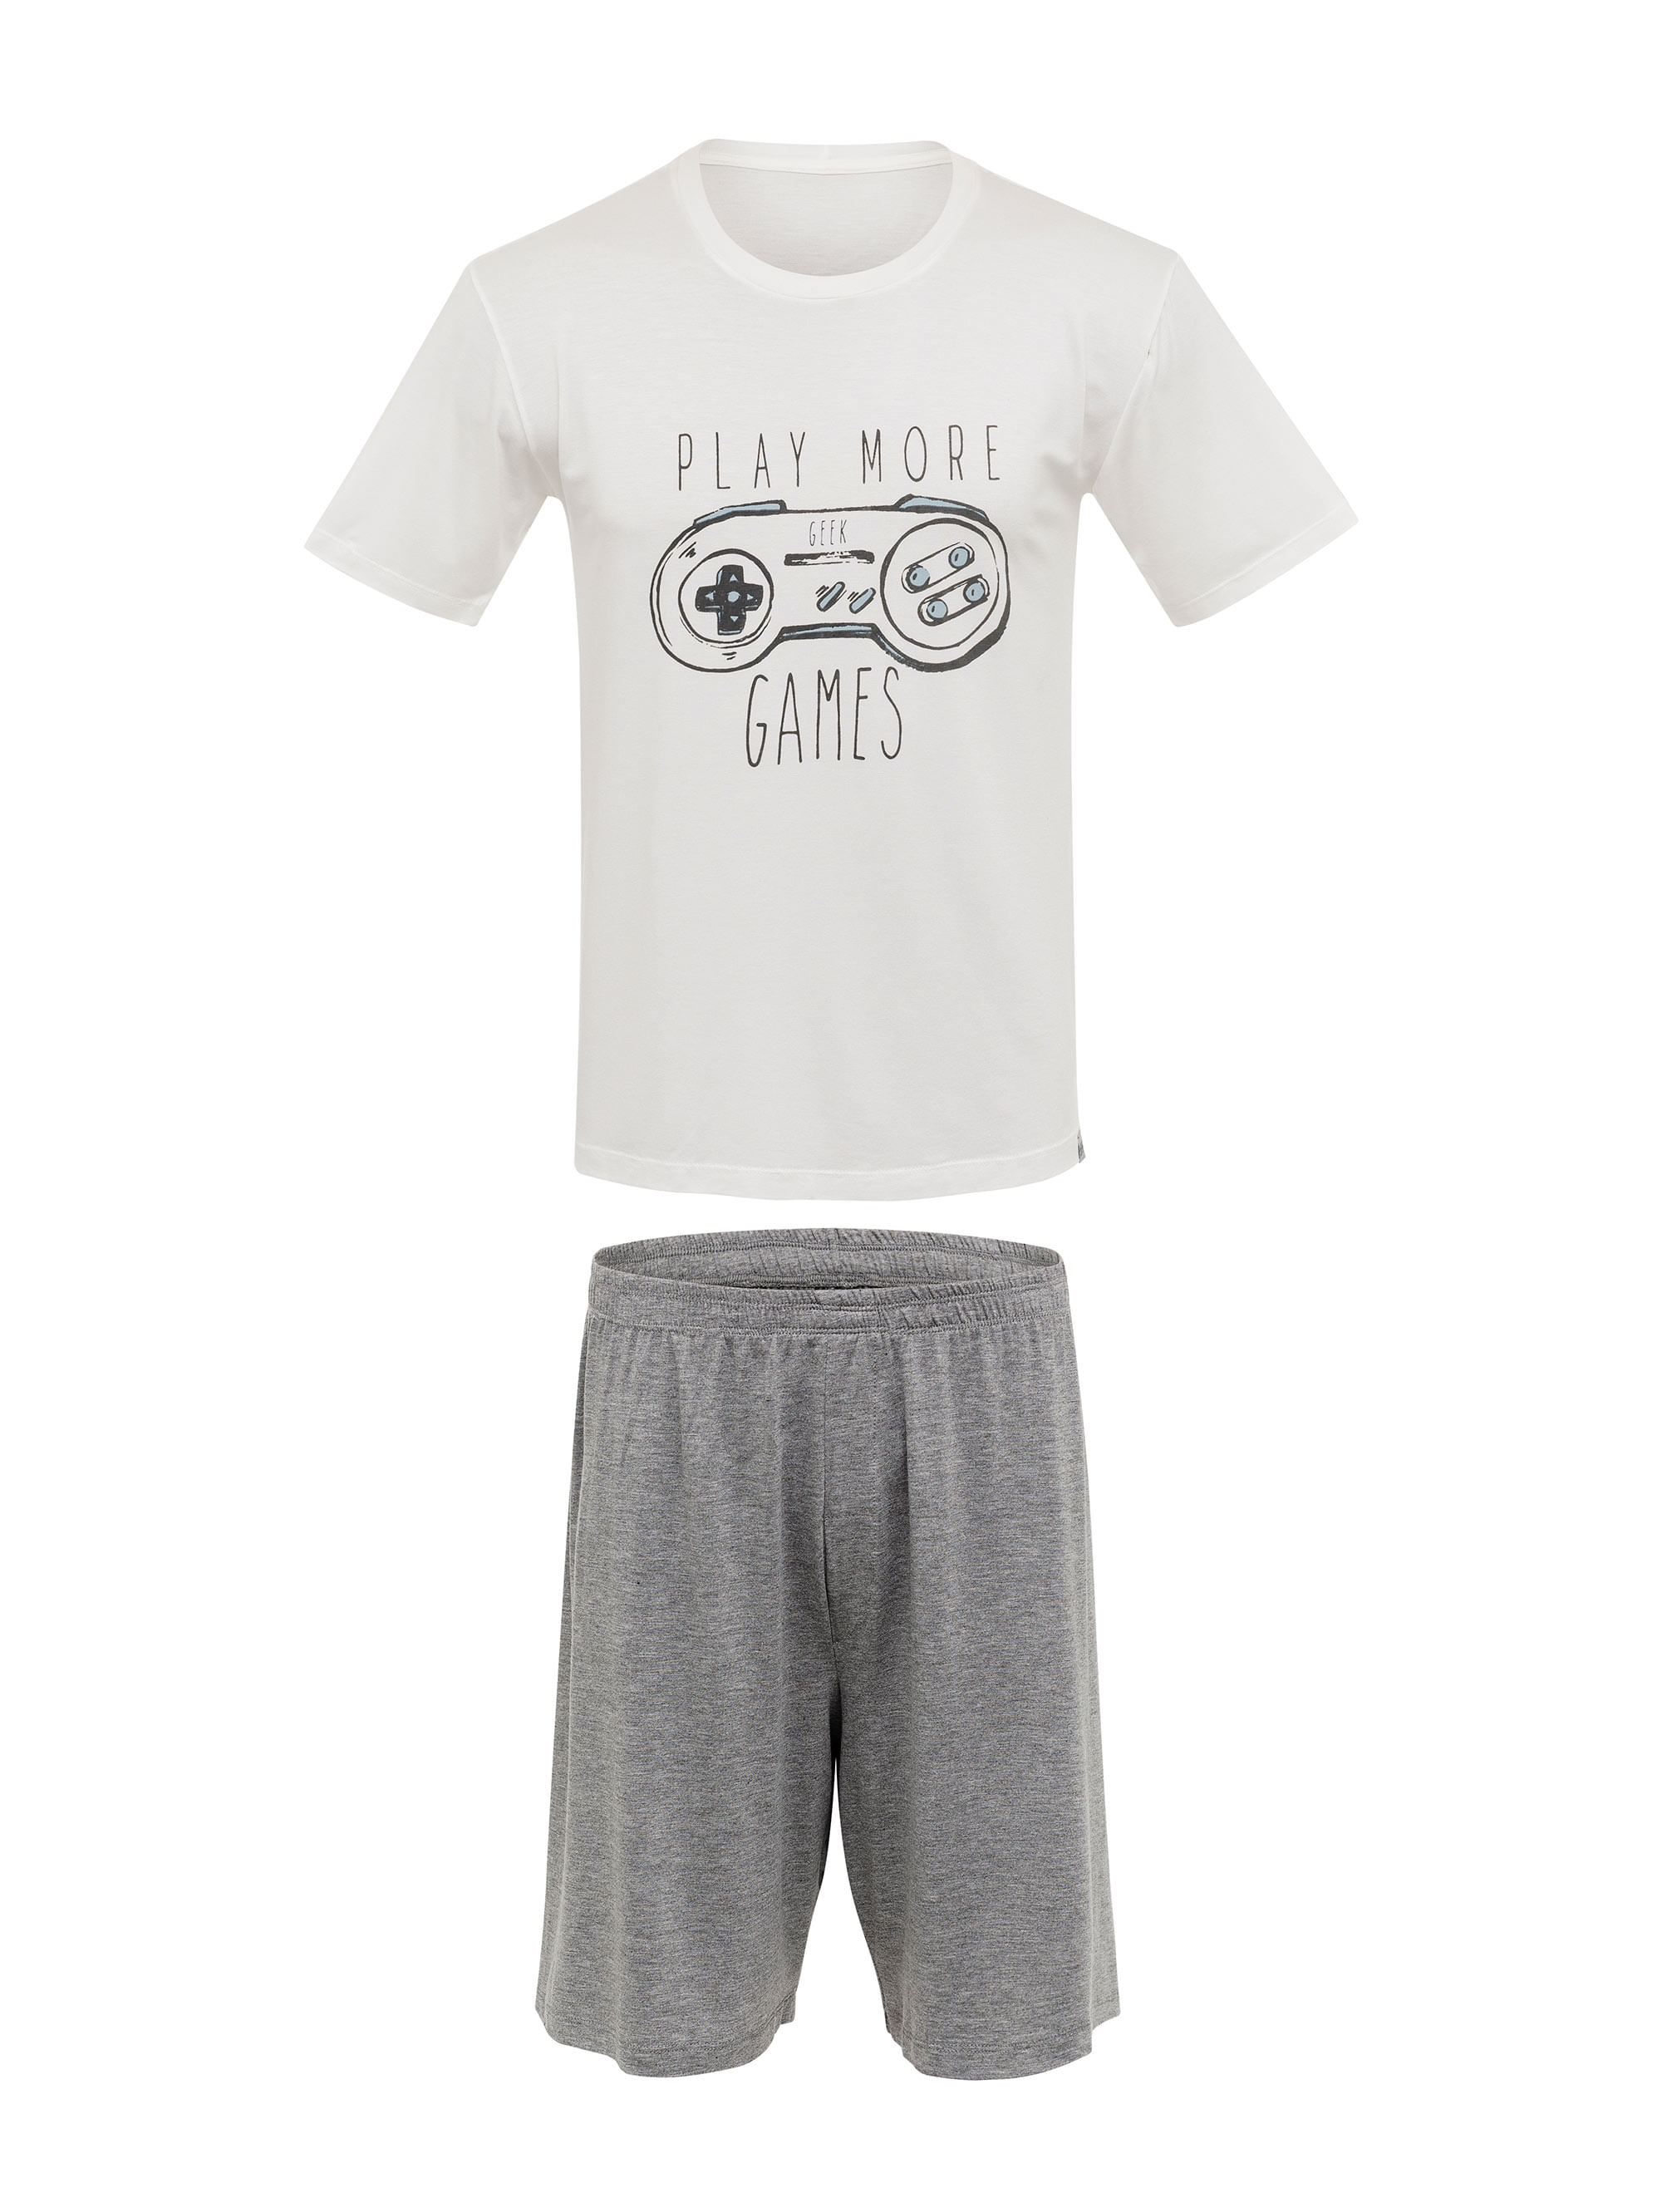 Pijama-Manga-Curta-Masculino-Game-Control---OUT---04.02.0759